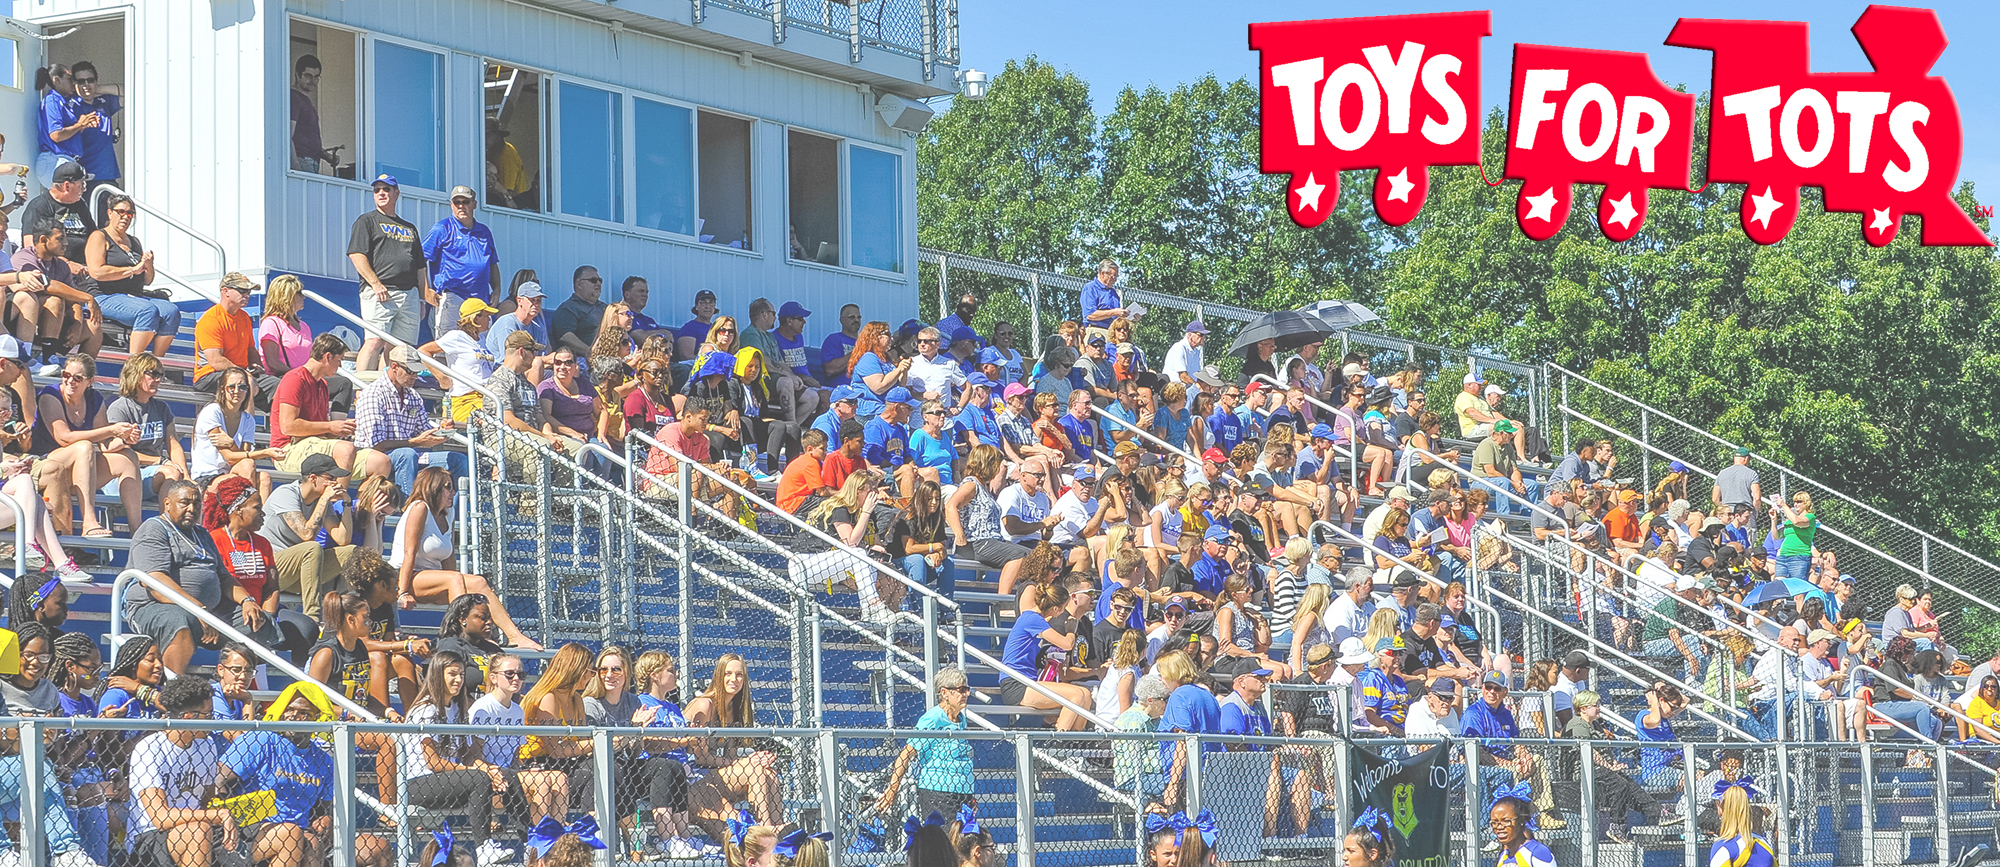 Western New England to Host Toys For Tots Campaign During Saturday's Football Game